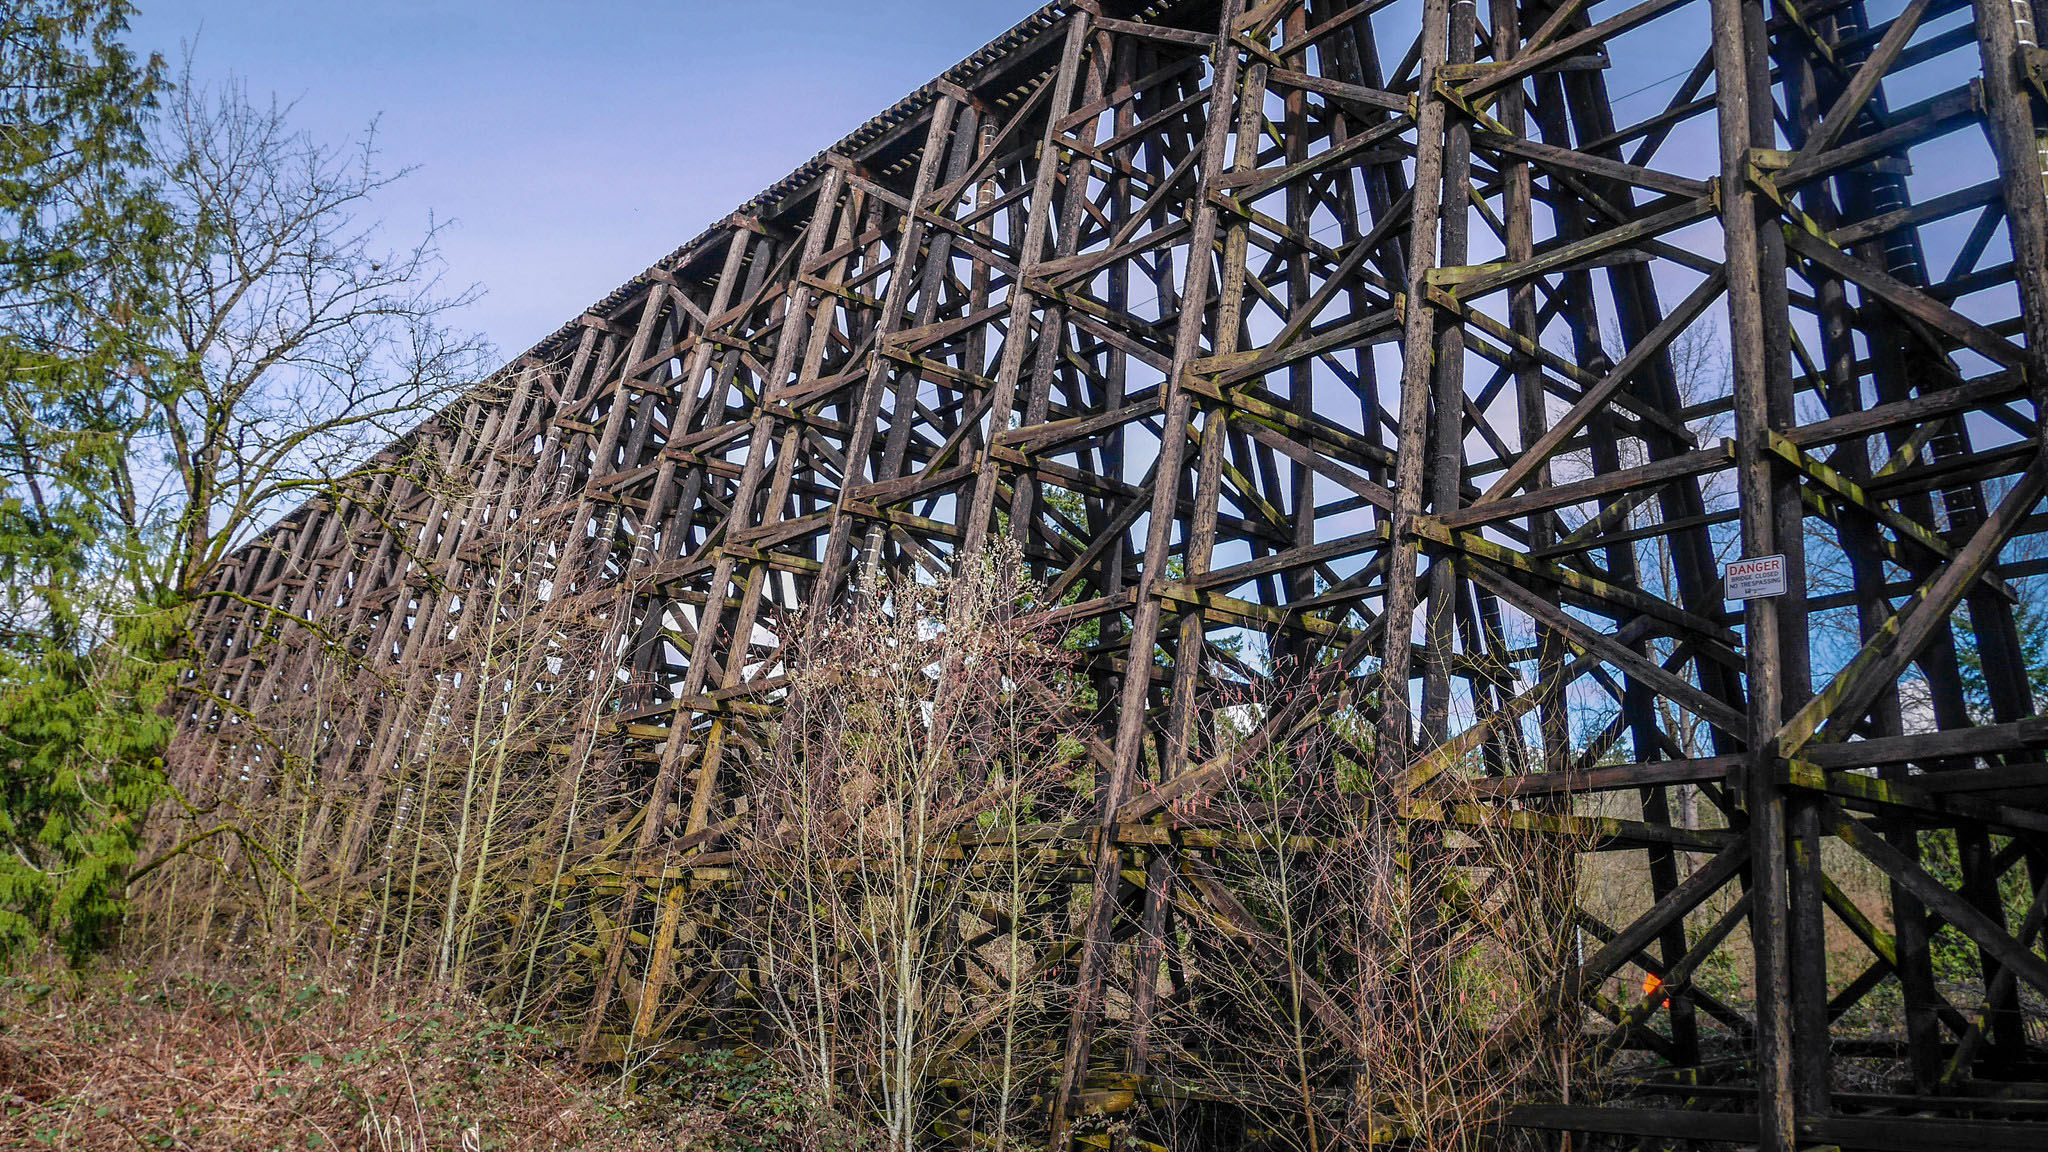 The Wilburton Trestle is expected to be the icon of the emerging Eastside Rail Corridor, a 16-mile regional trail stretching from Renton to Woodinville with a spur to Redmond.